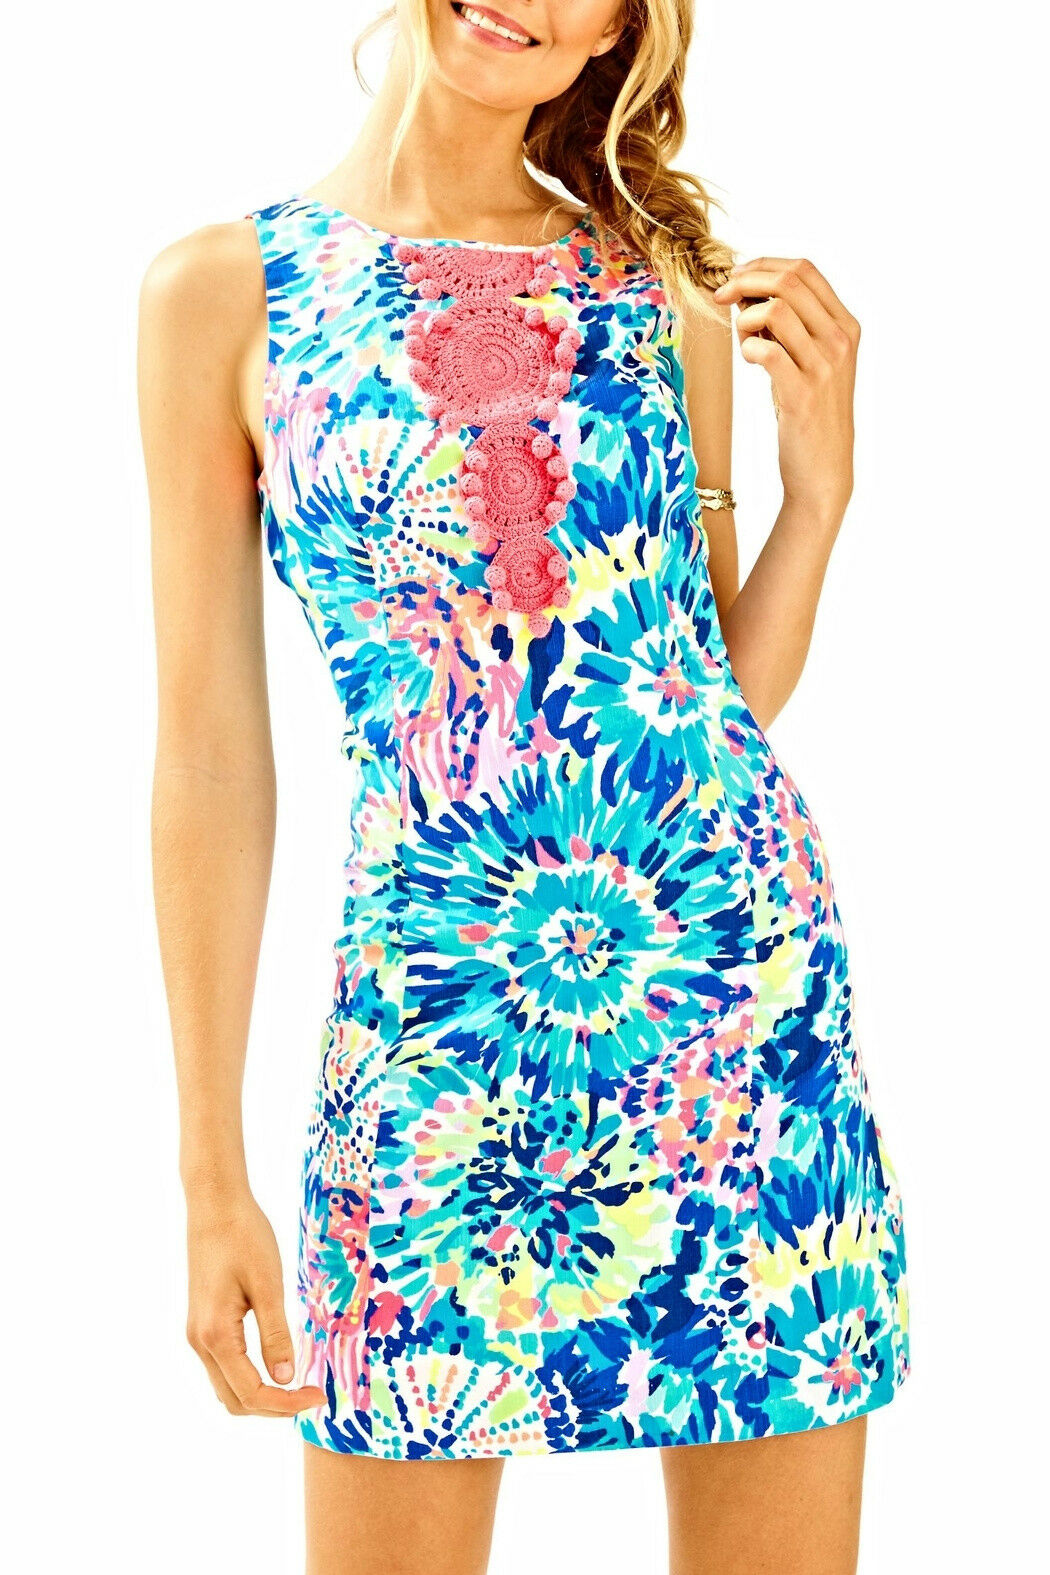 LILLY PULITZER ADARA SHIFT DRESS, MULTI COLGoldt, DIVE IN, NWT , 0